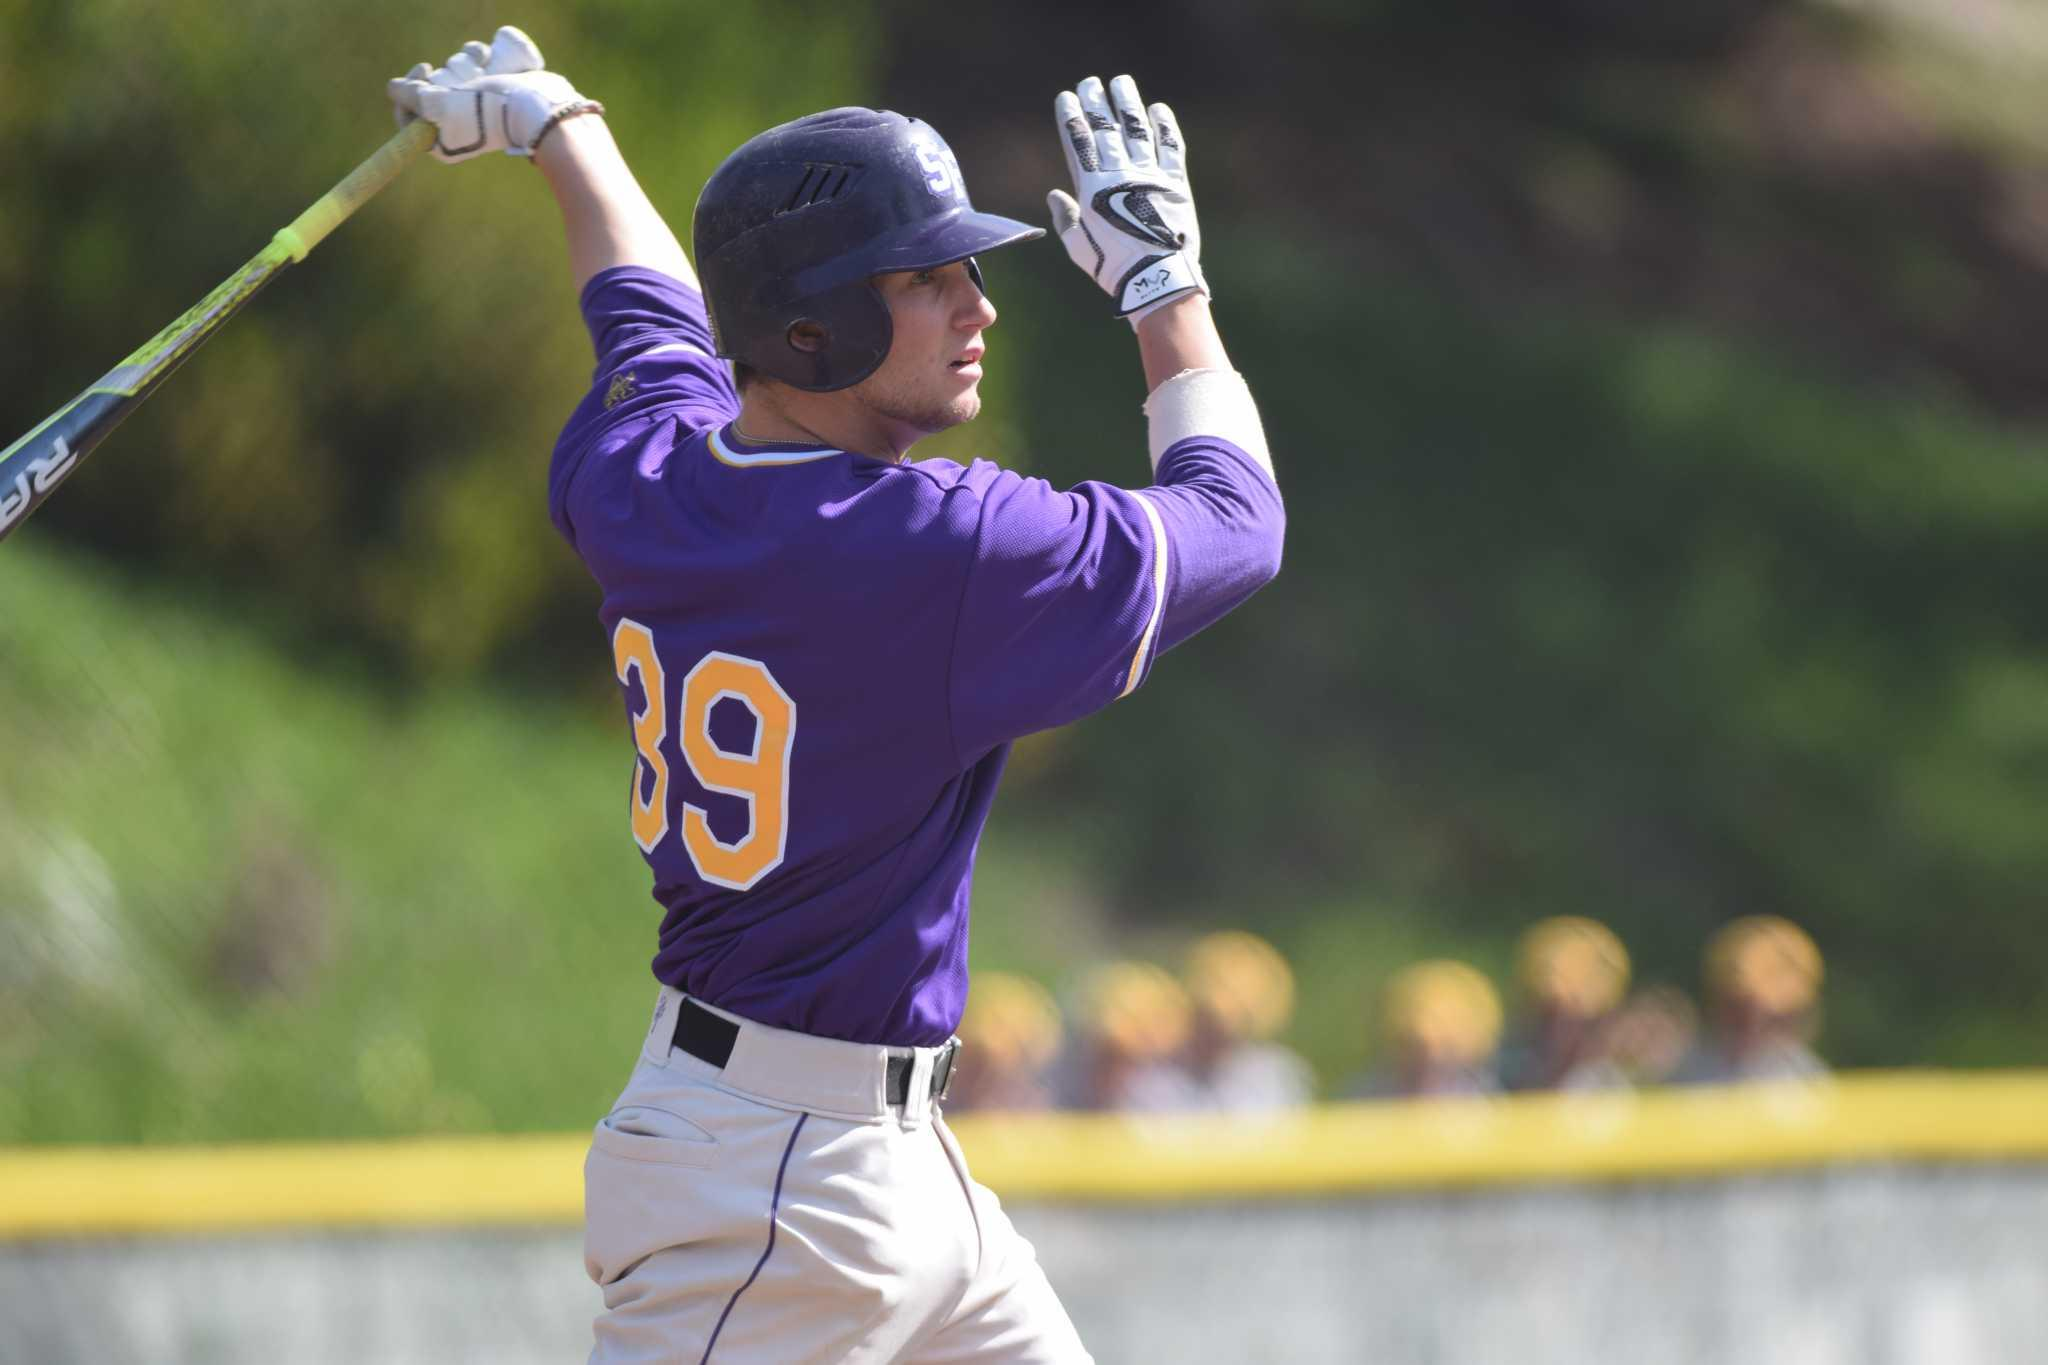 SF State Gators shortstop Bryce Brooks bats against the Cal Poly Pomona Broncos at Maloney Field, Saturday, Feb. 27. (Gabriela Rodriguez / Xpress)